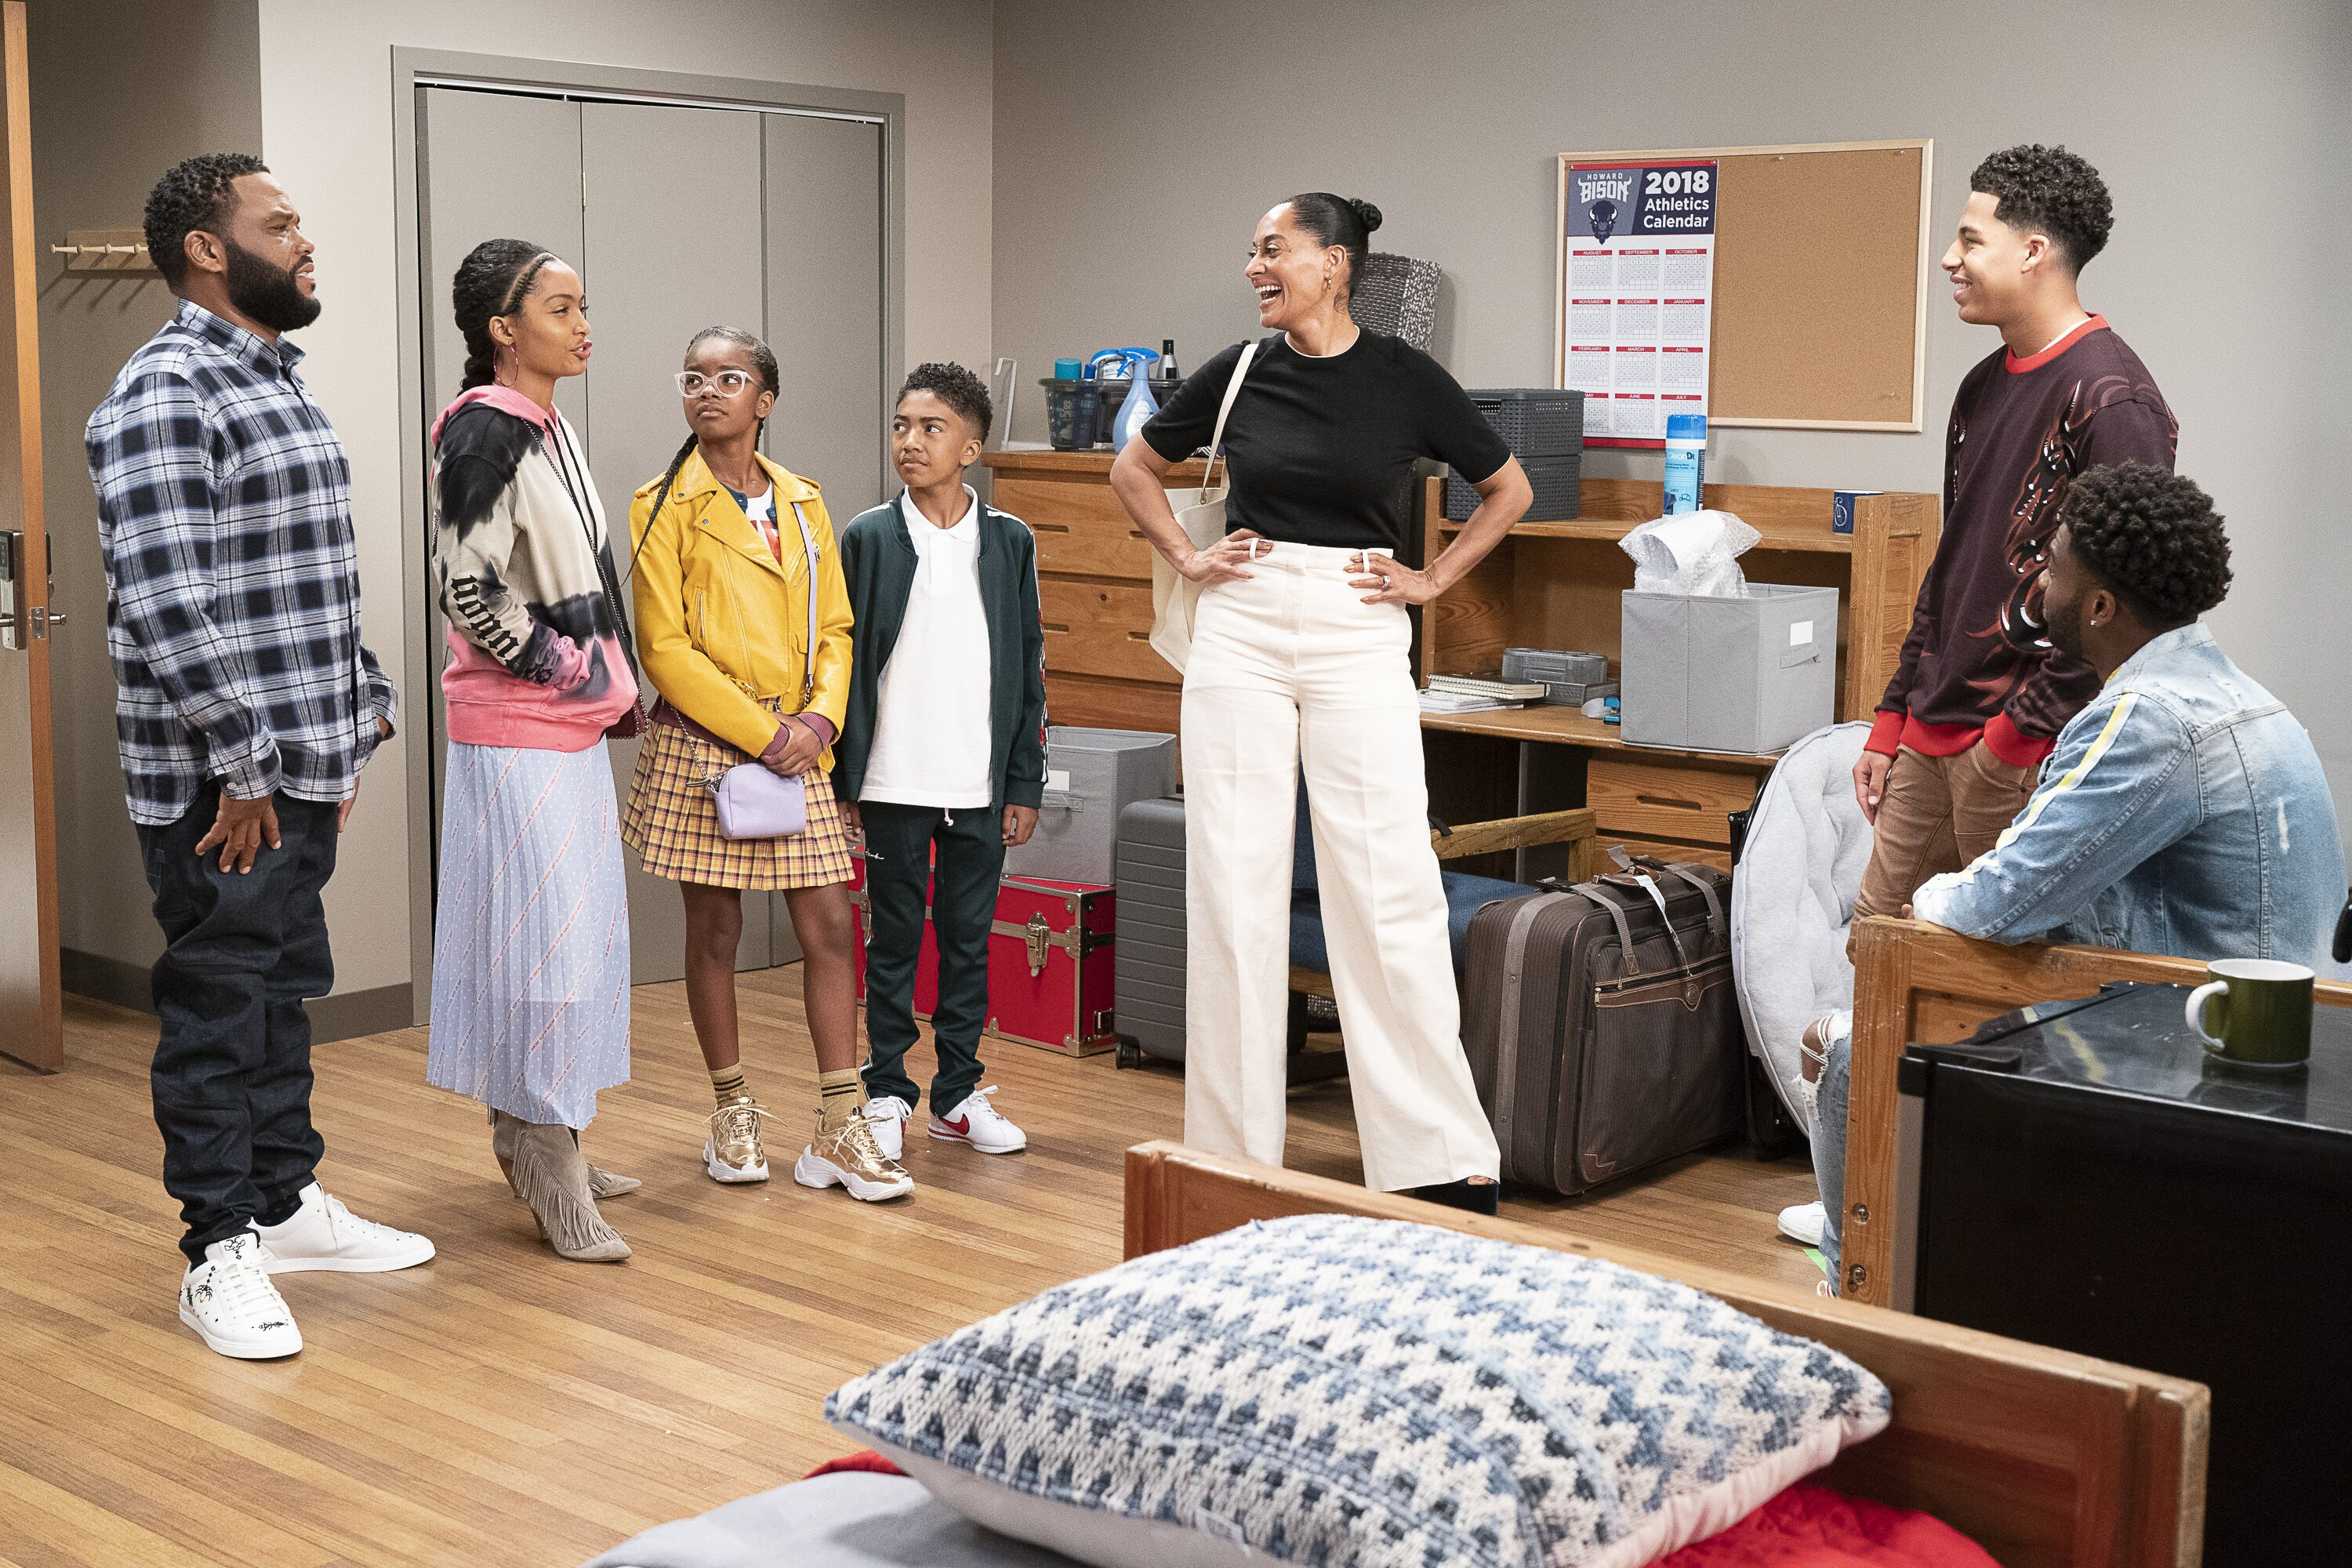 How to watch the Black-ish season 5 premiere live online